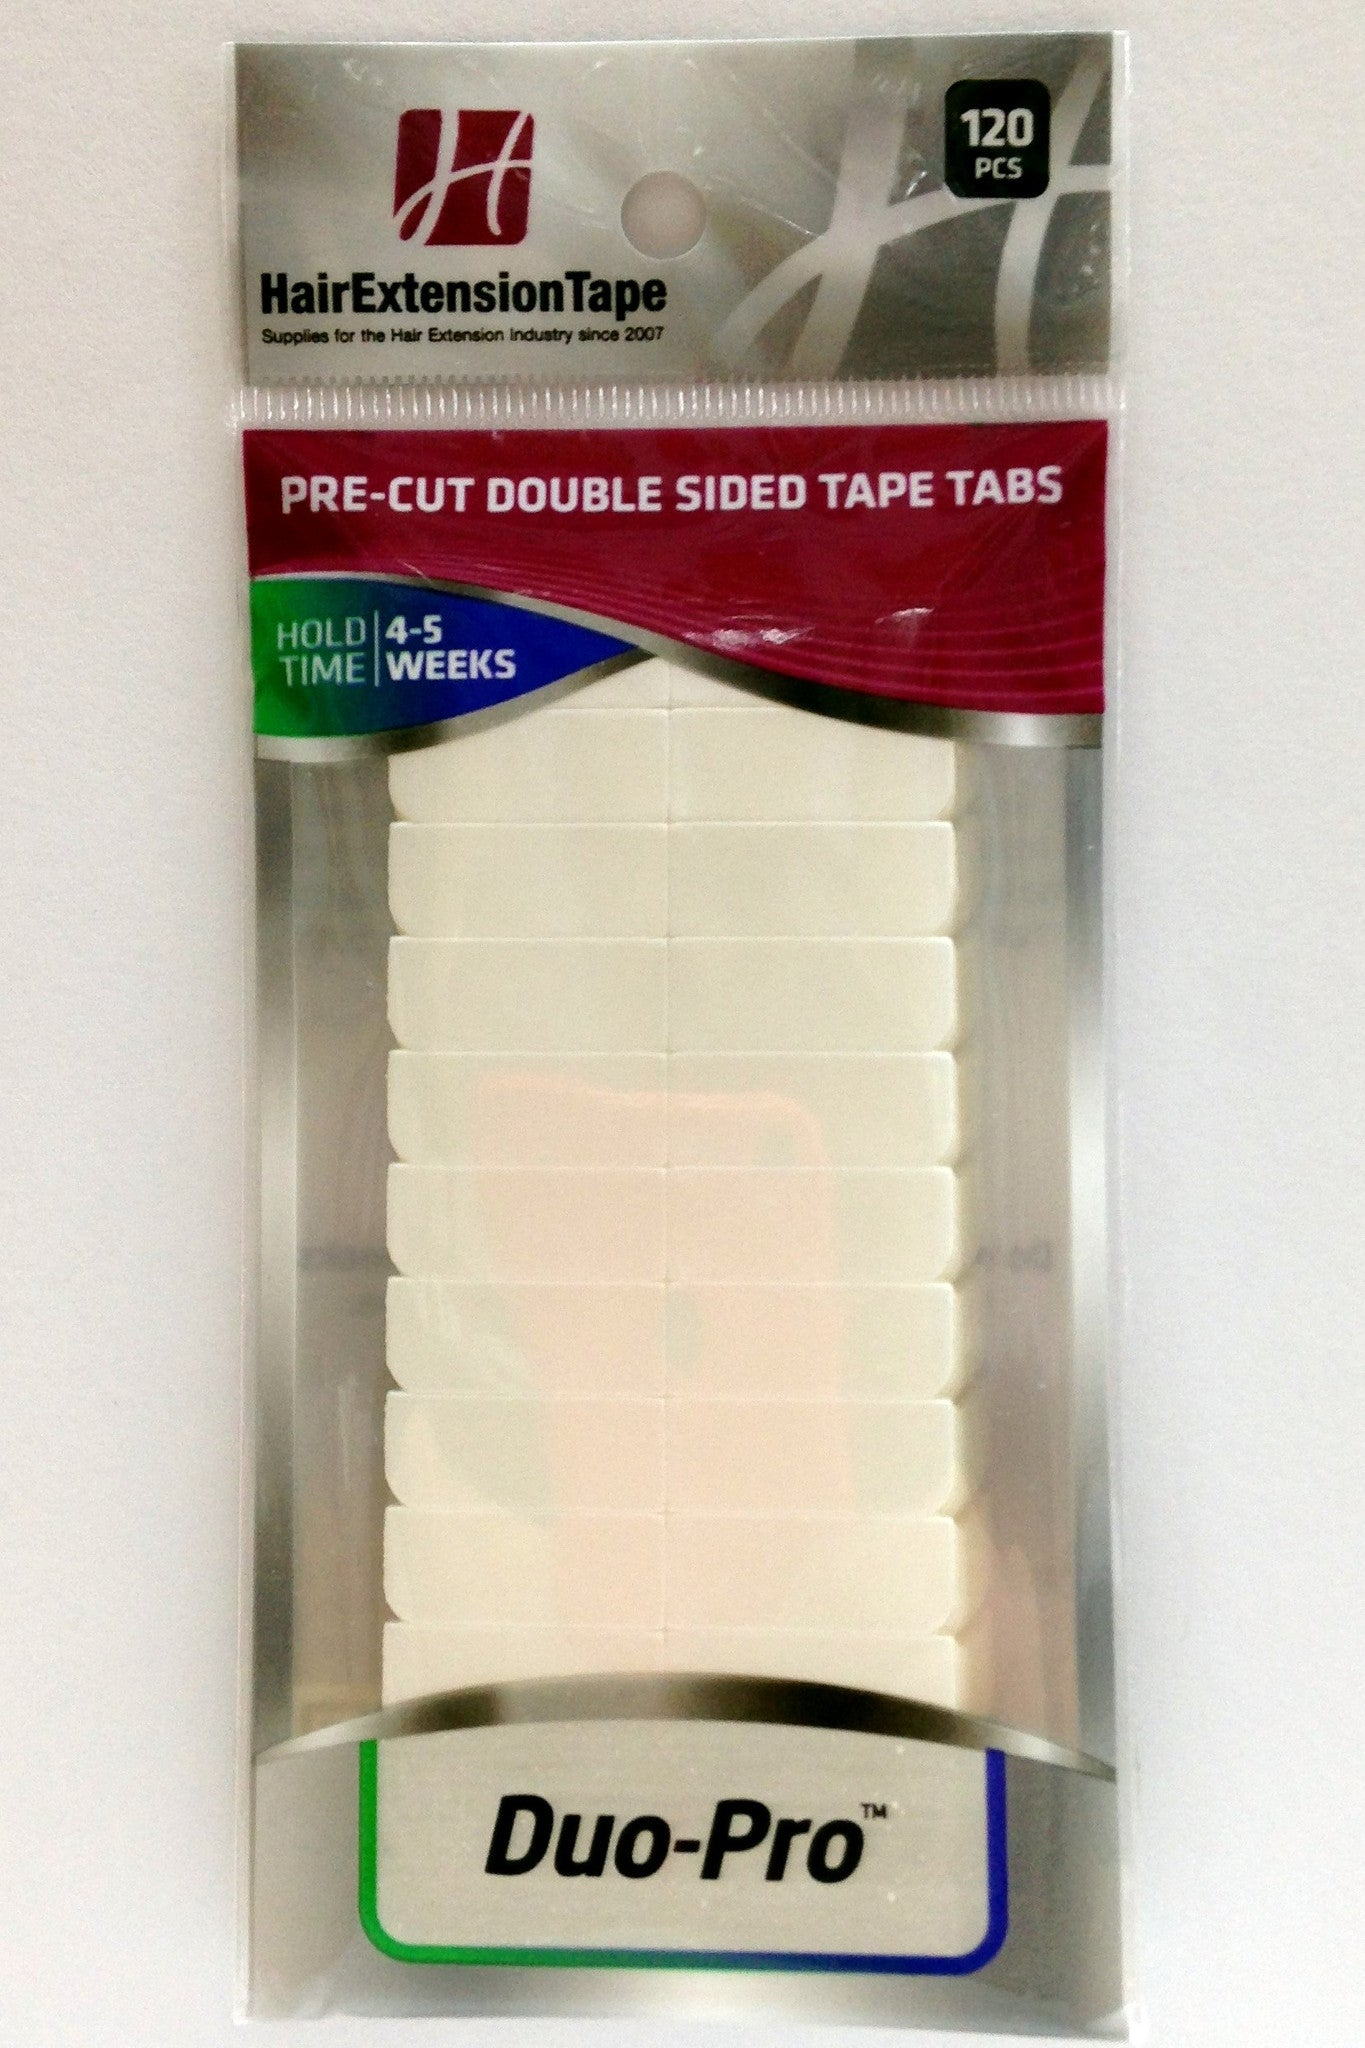 Replacement Tape Duo Pro Tabs 120 Pieces Paragon Hair Extensions